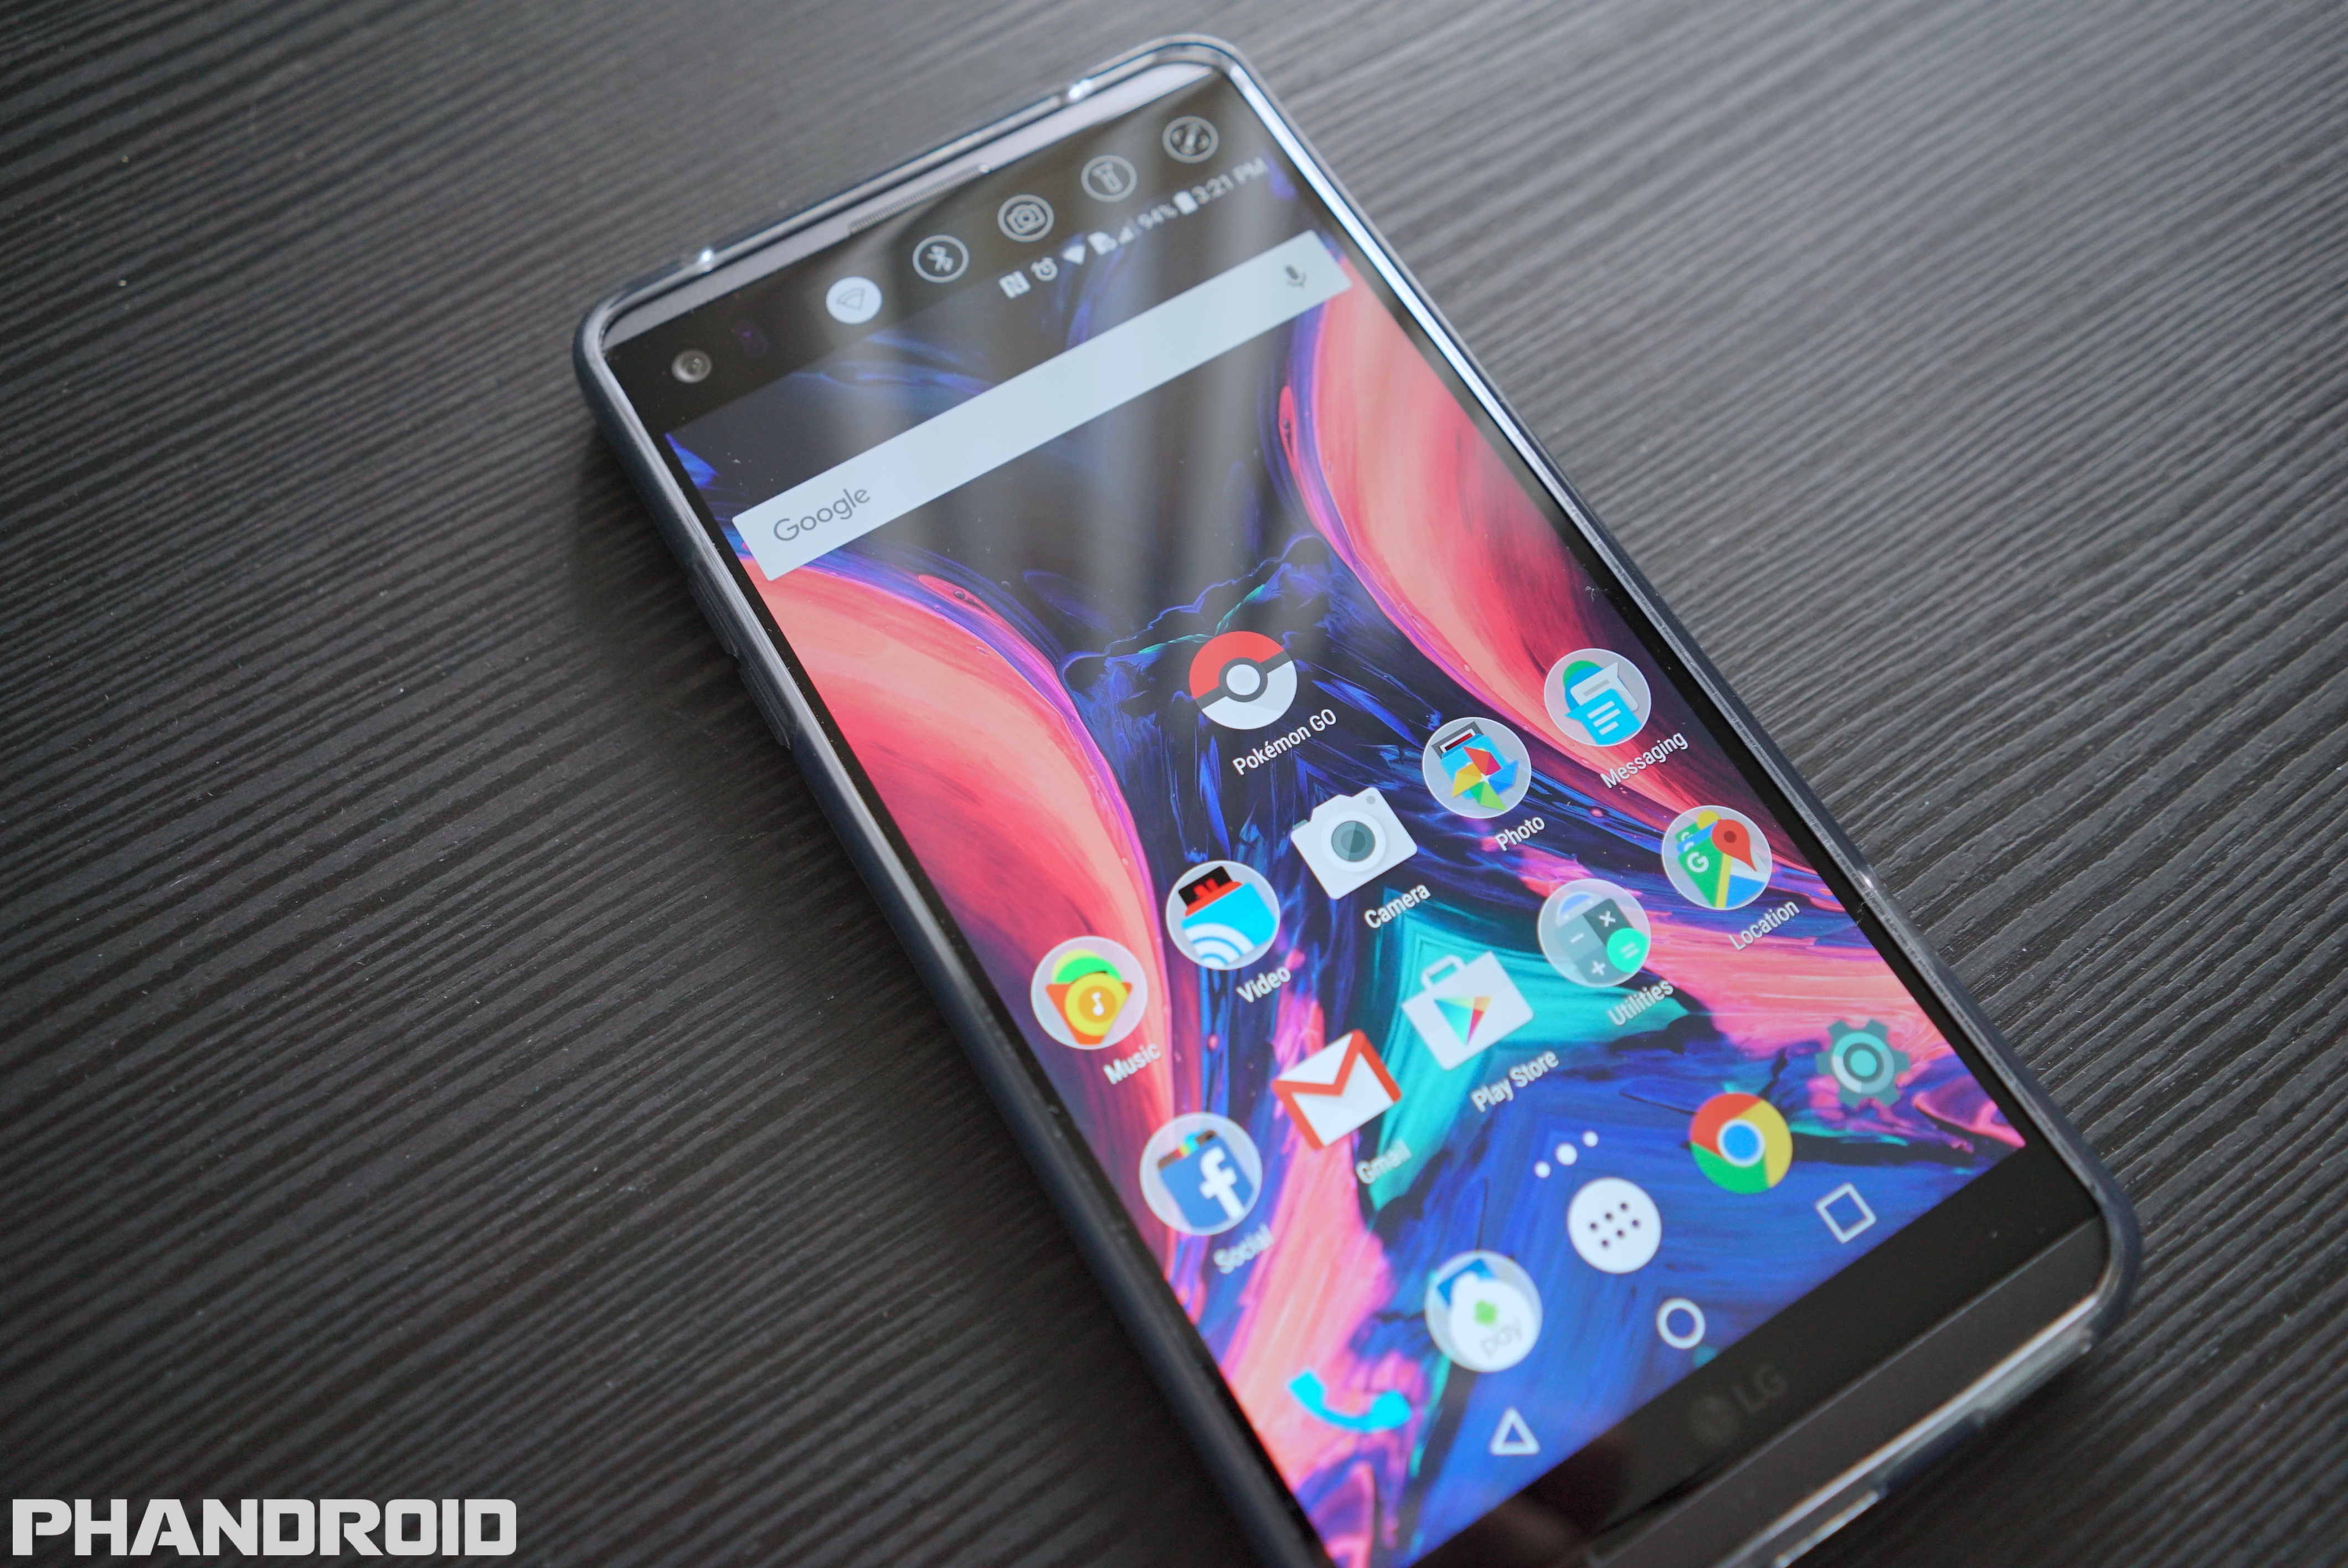 The LG V20 has been rooted